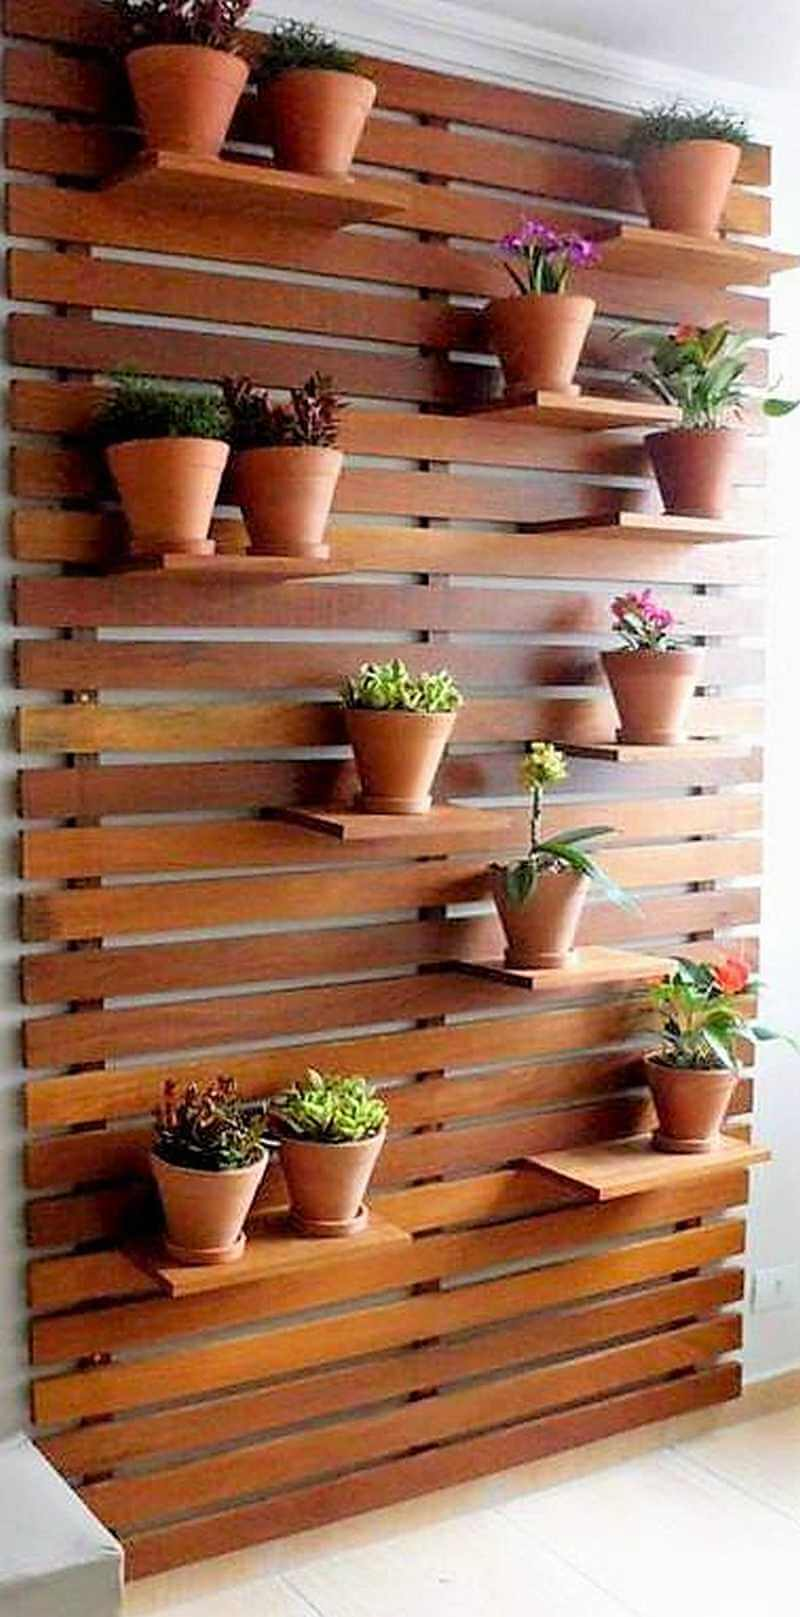 pallet wall attached pots stand